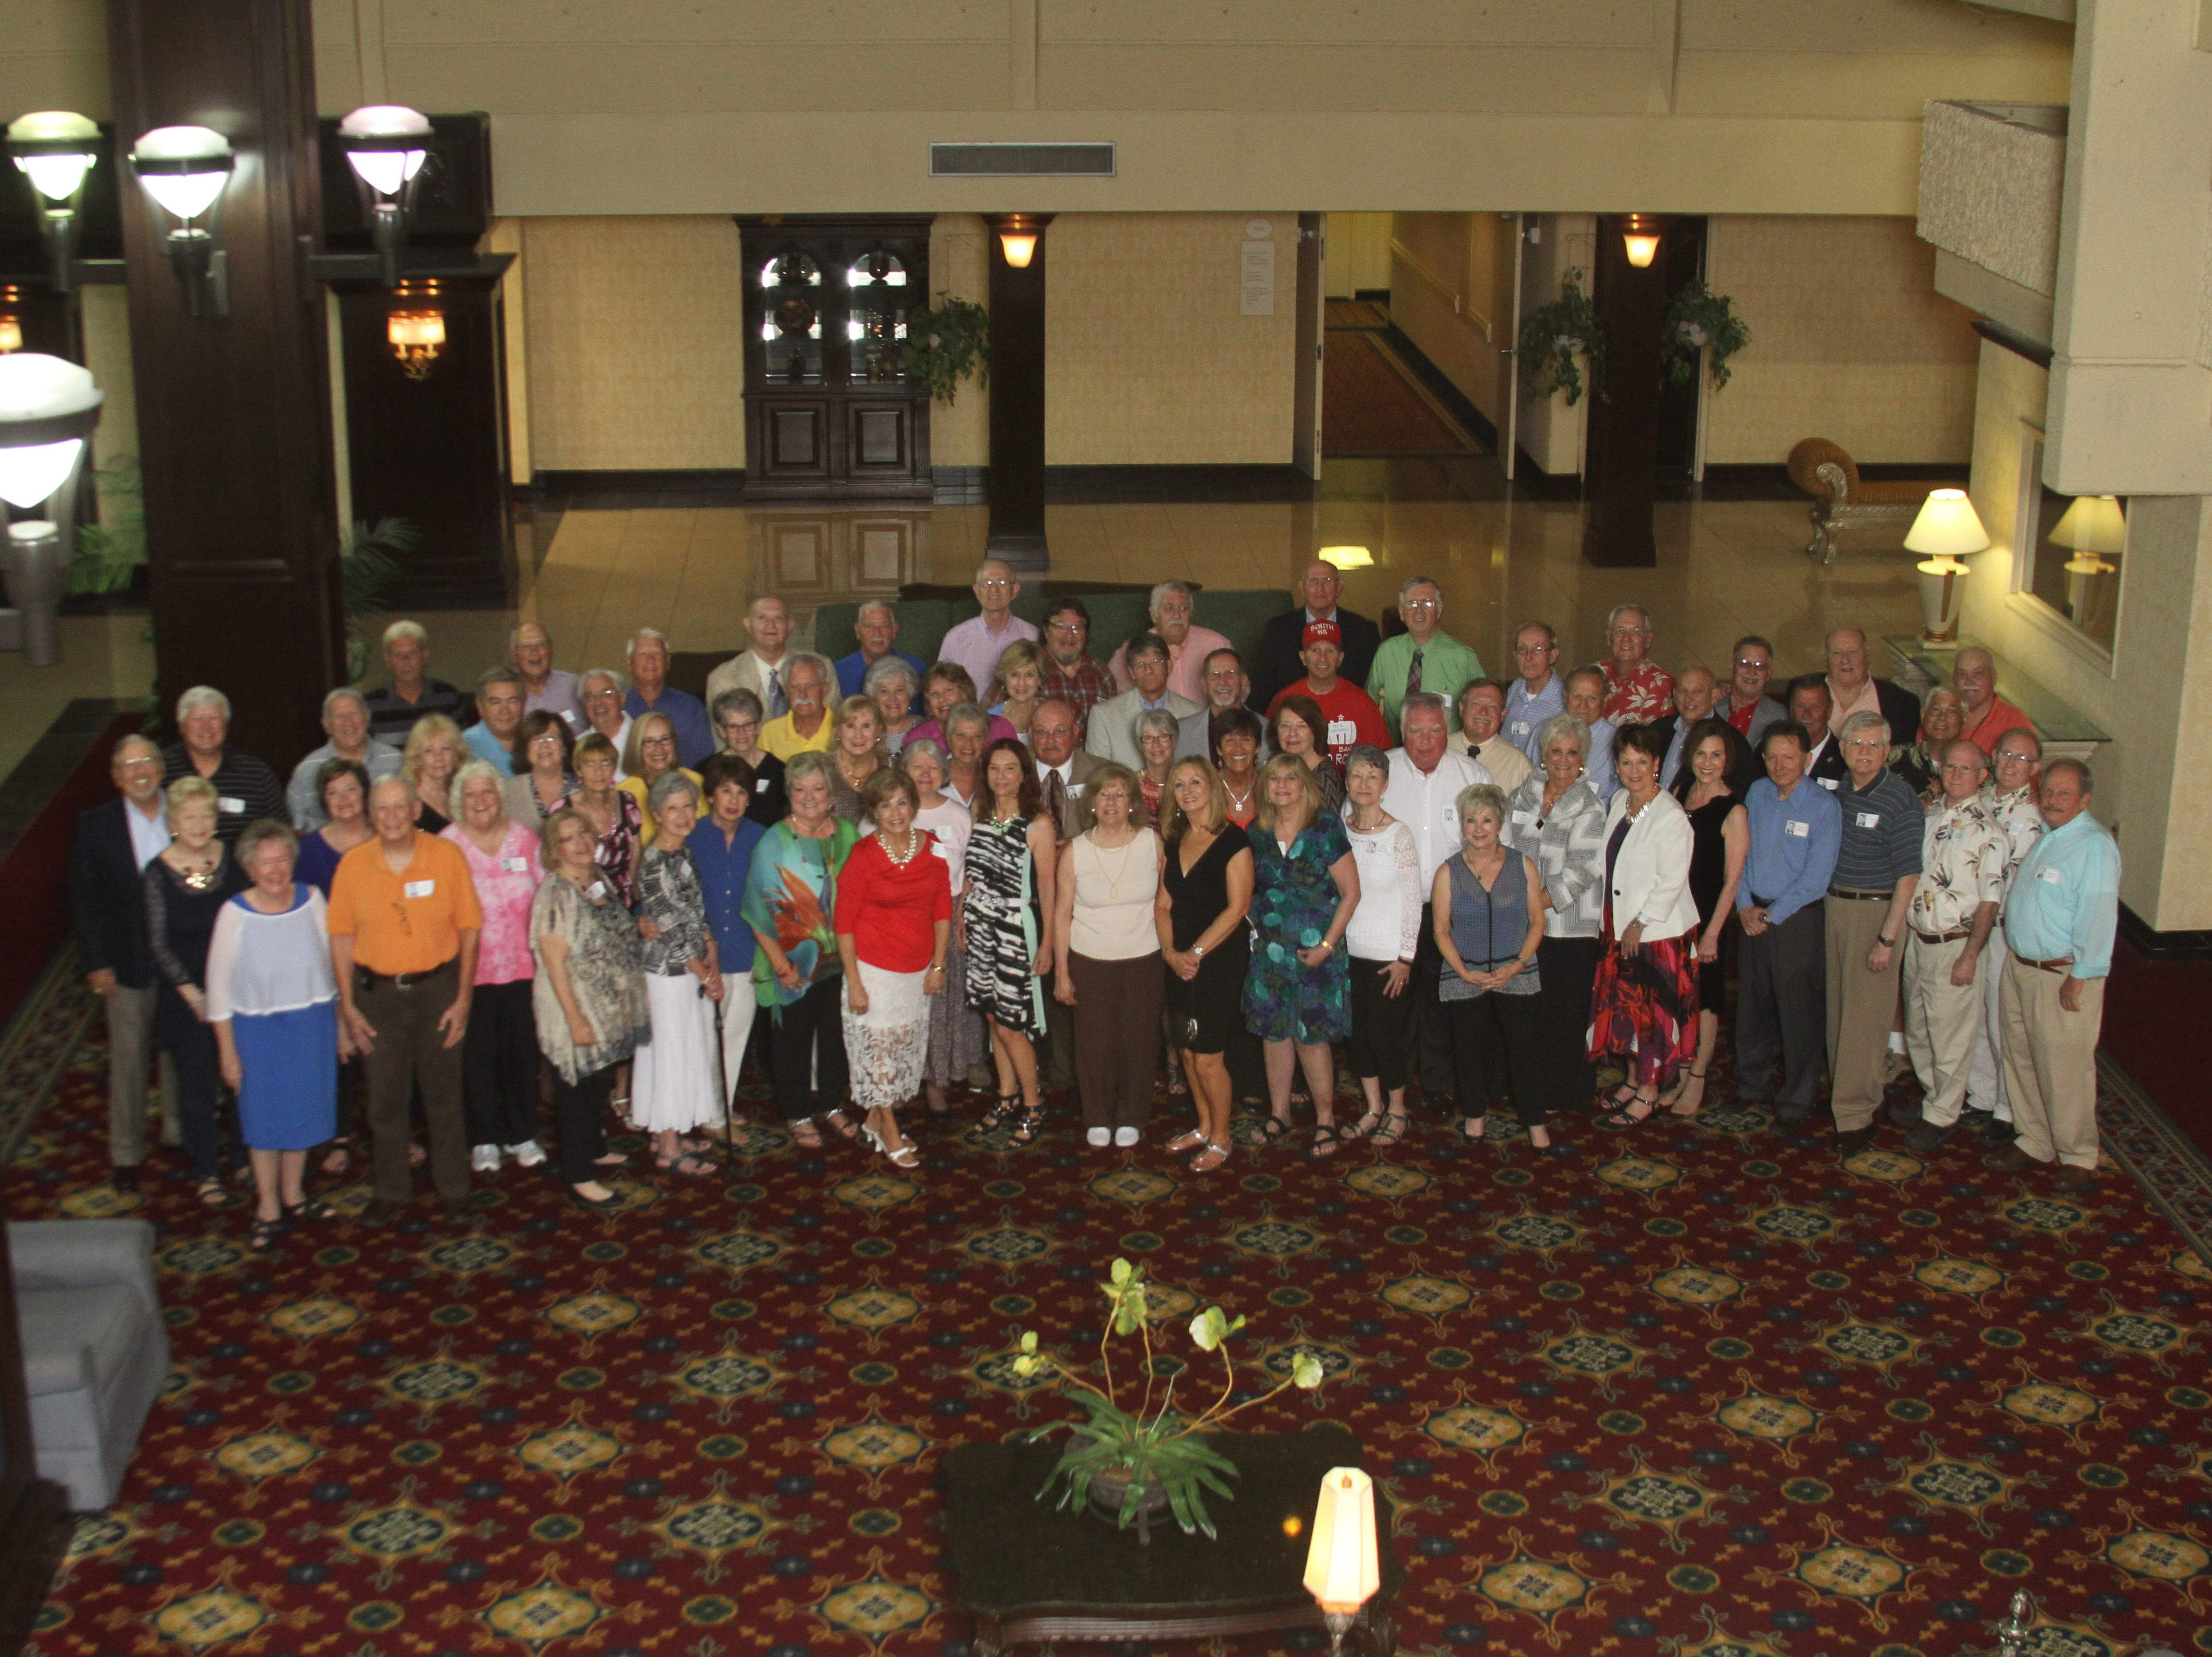 Contributed Photo The South High School Class of 1965 celebrated the milestone 50th-year reunion with classmates at the Knoxville Marriott. Bill Young, local coach and educator, was the master of ceremonies at the sit-down dinner for 130 people in the hotelís ballrooms. Young welcomed and thanked seven former teachers who were the special guests of the evening and led the class down memory lane with laughter, gratitude and reverence by saluting the veterans and deceased classmates. Warm friendships were renewed by folks coming from near and far. 2015